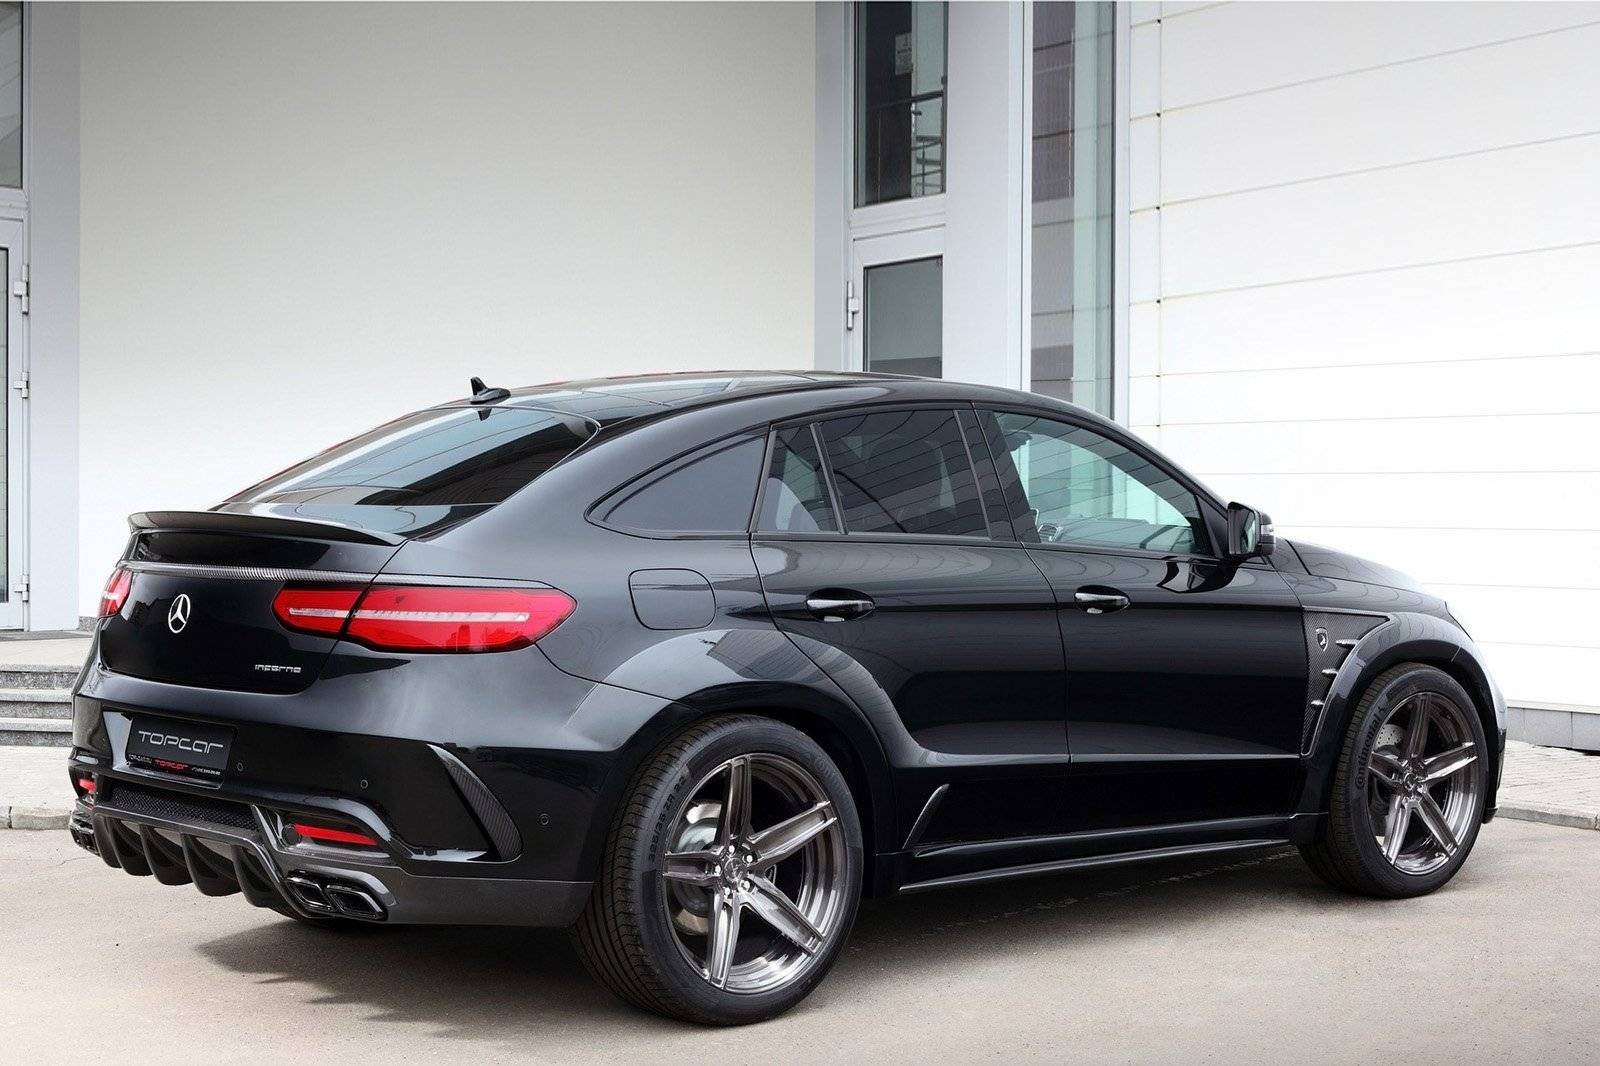 Topcar Vertimmert Mercedes GLE Coup Tuning Amp Styling